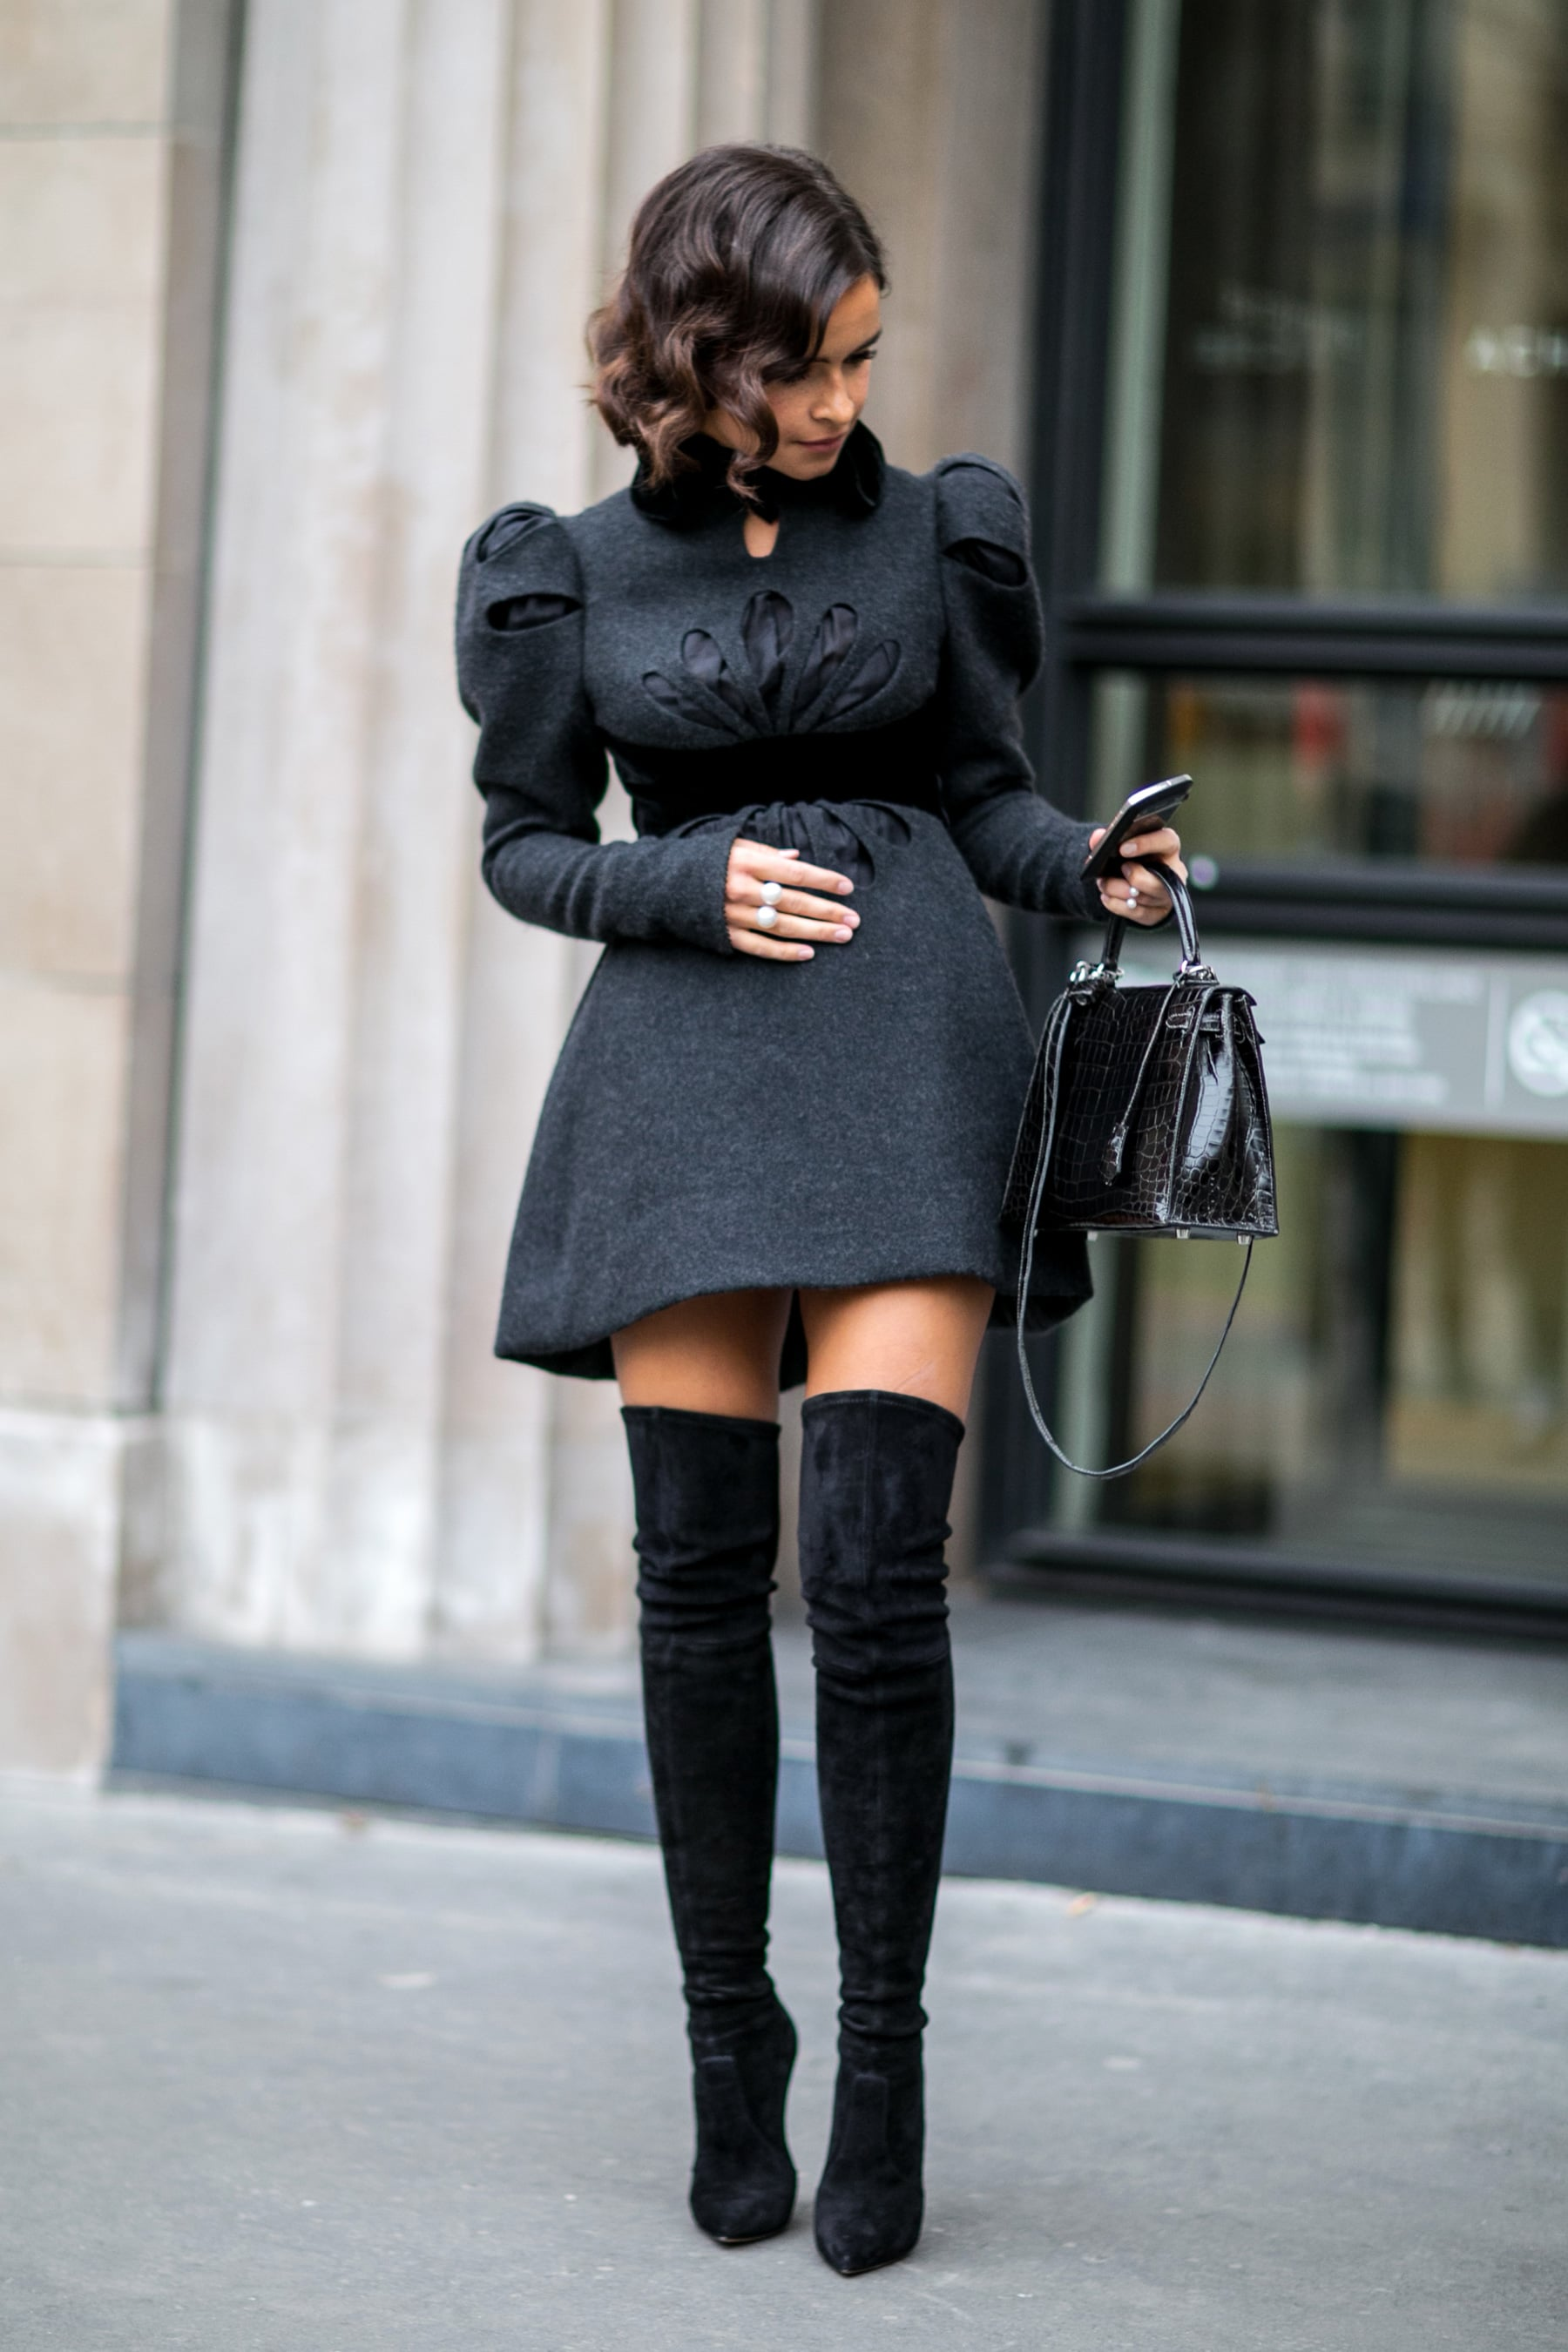 Miroslava Duma knows the trick to making a sweet dress a little sexier is over-the-knee boots.